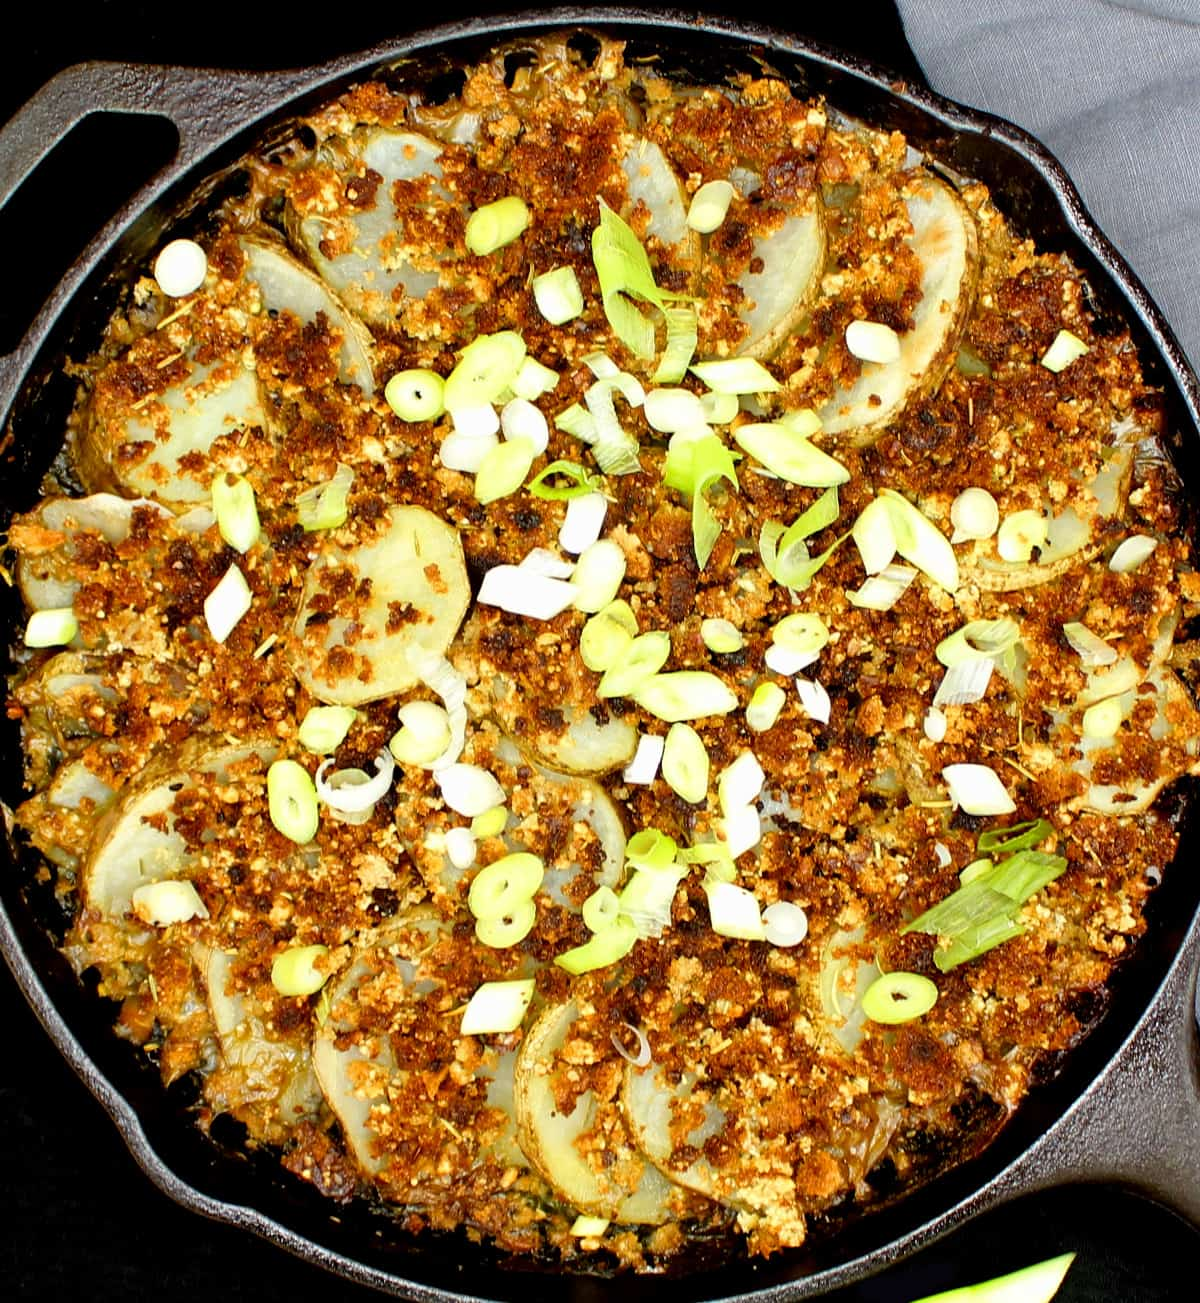 Vegan spinach potato casserole in a cast iron skillet topped with breadcrumbs and scattered with scallions on a black background.